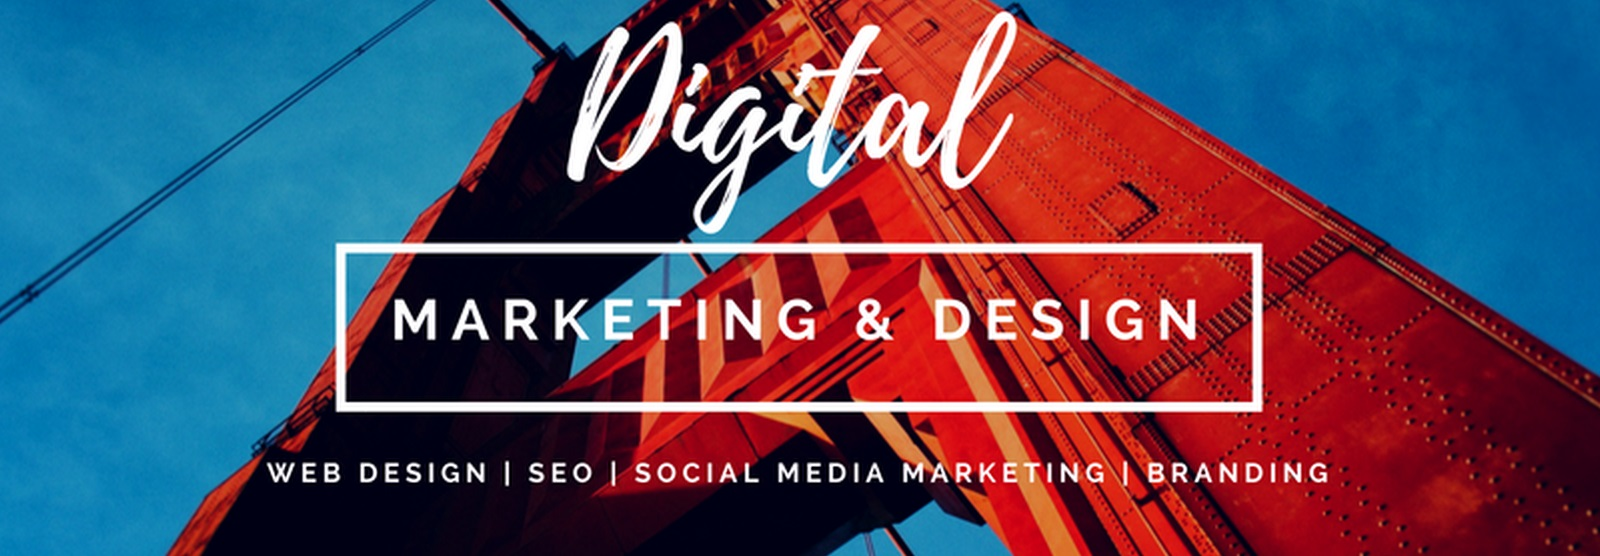 Digital Marketing and Web Design